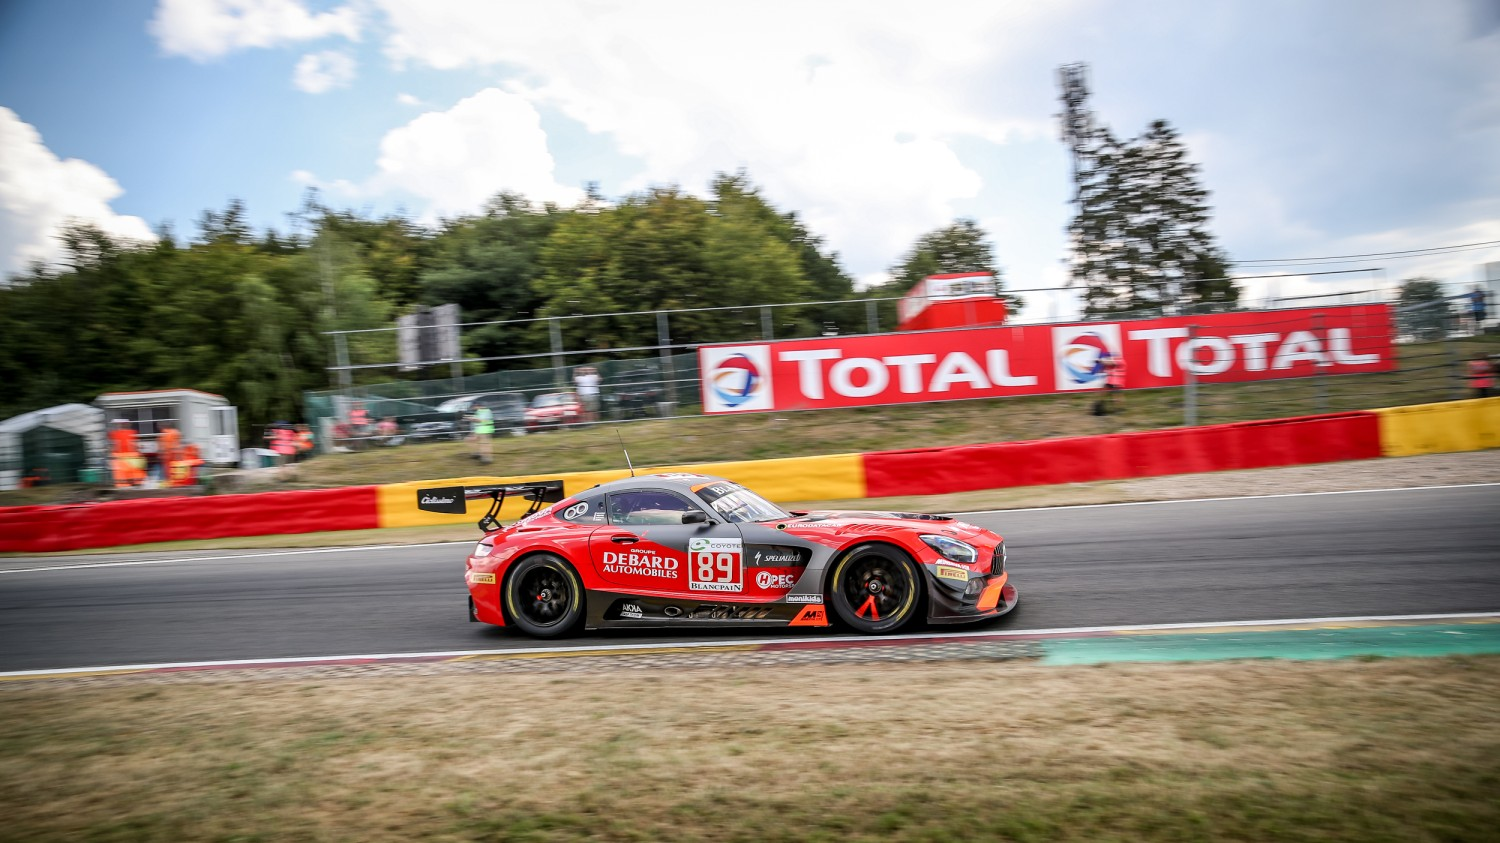 #89 Akka ASP Team FRA Mercedes-AMG GT3 AM Cup Nico Jamin FRA Philippe Giauque CHE Eric Debard FRA Fabien Barthez FRA, Free Practice  | SRO /  Kevin Pecks